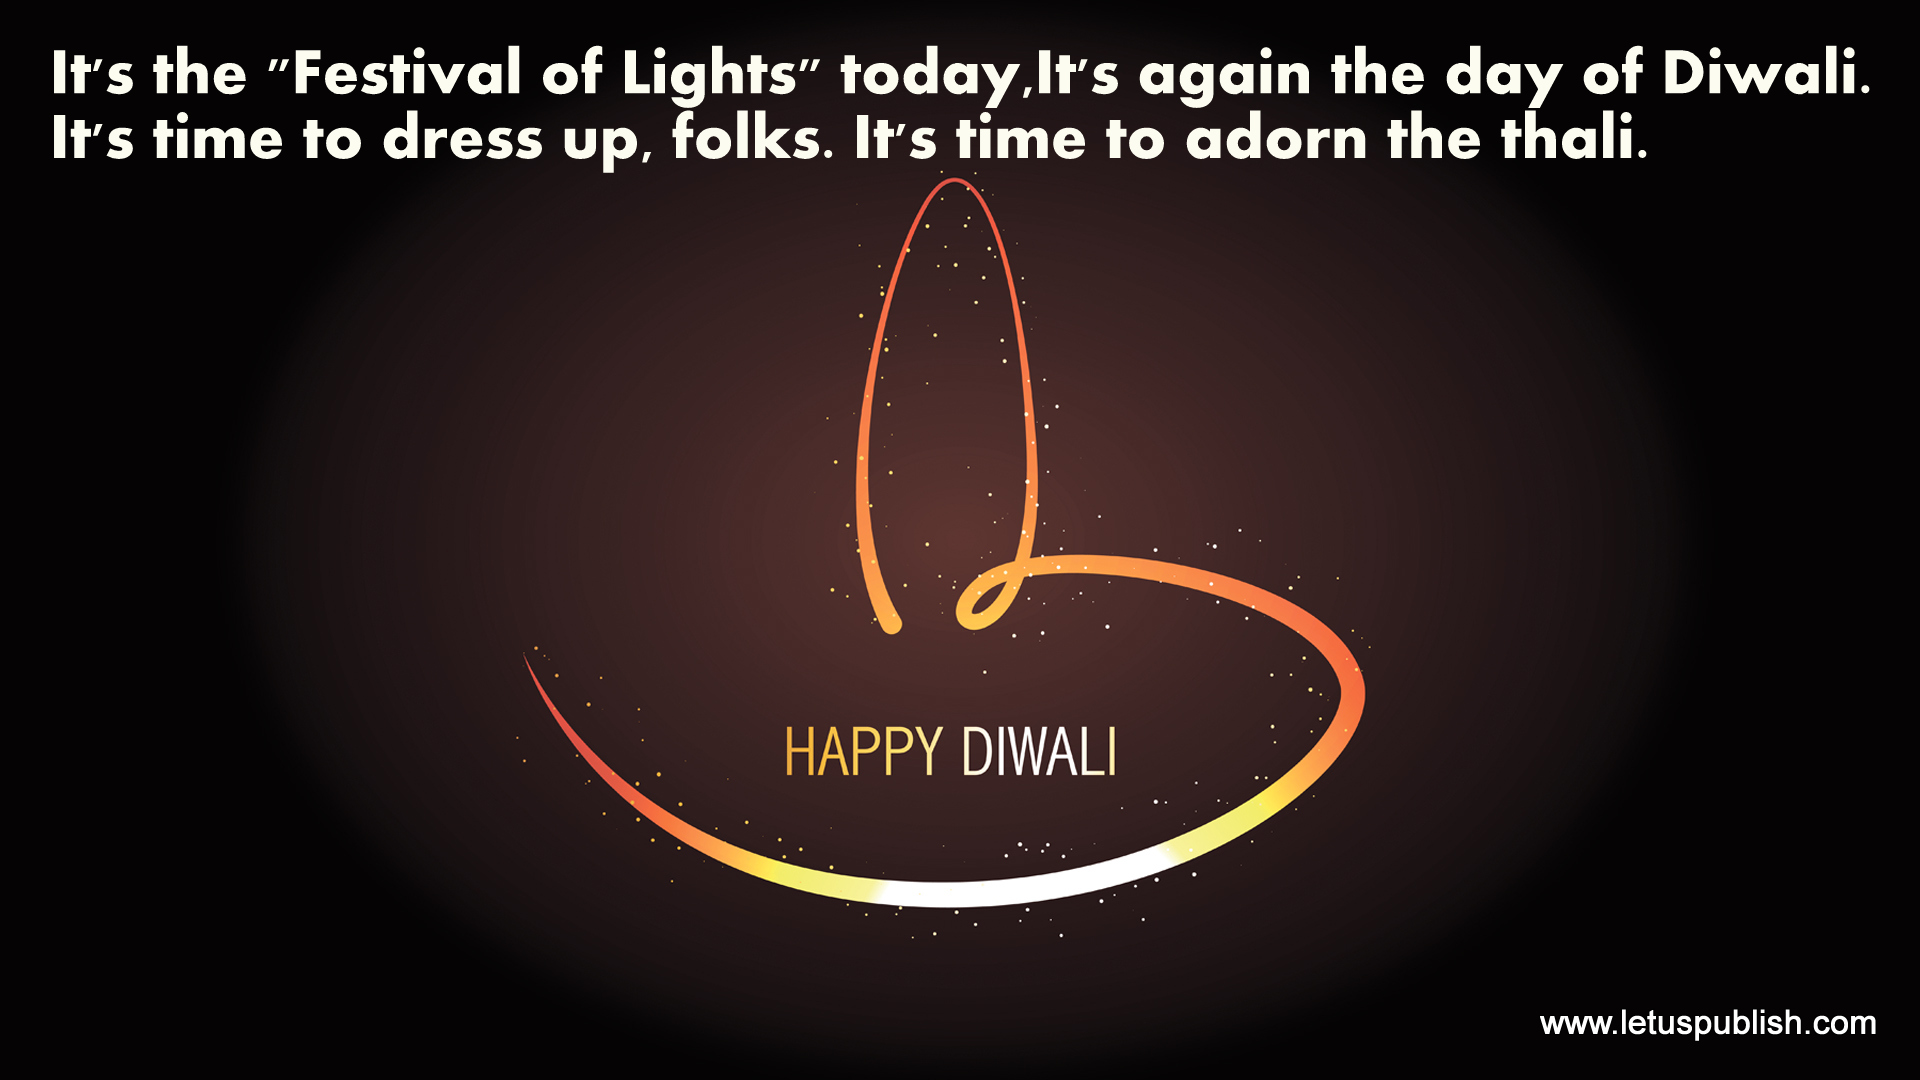 Download happy diwali wallpaper with quotes